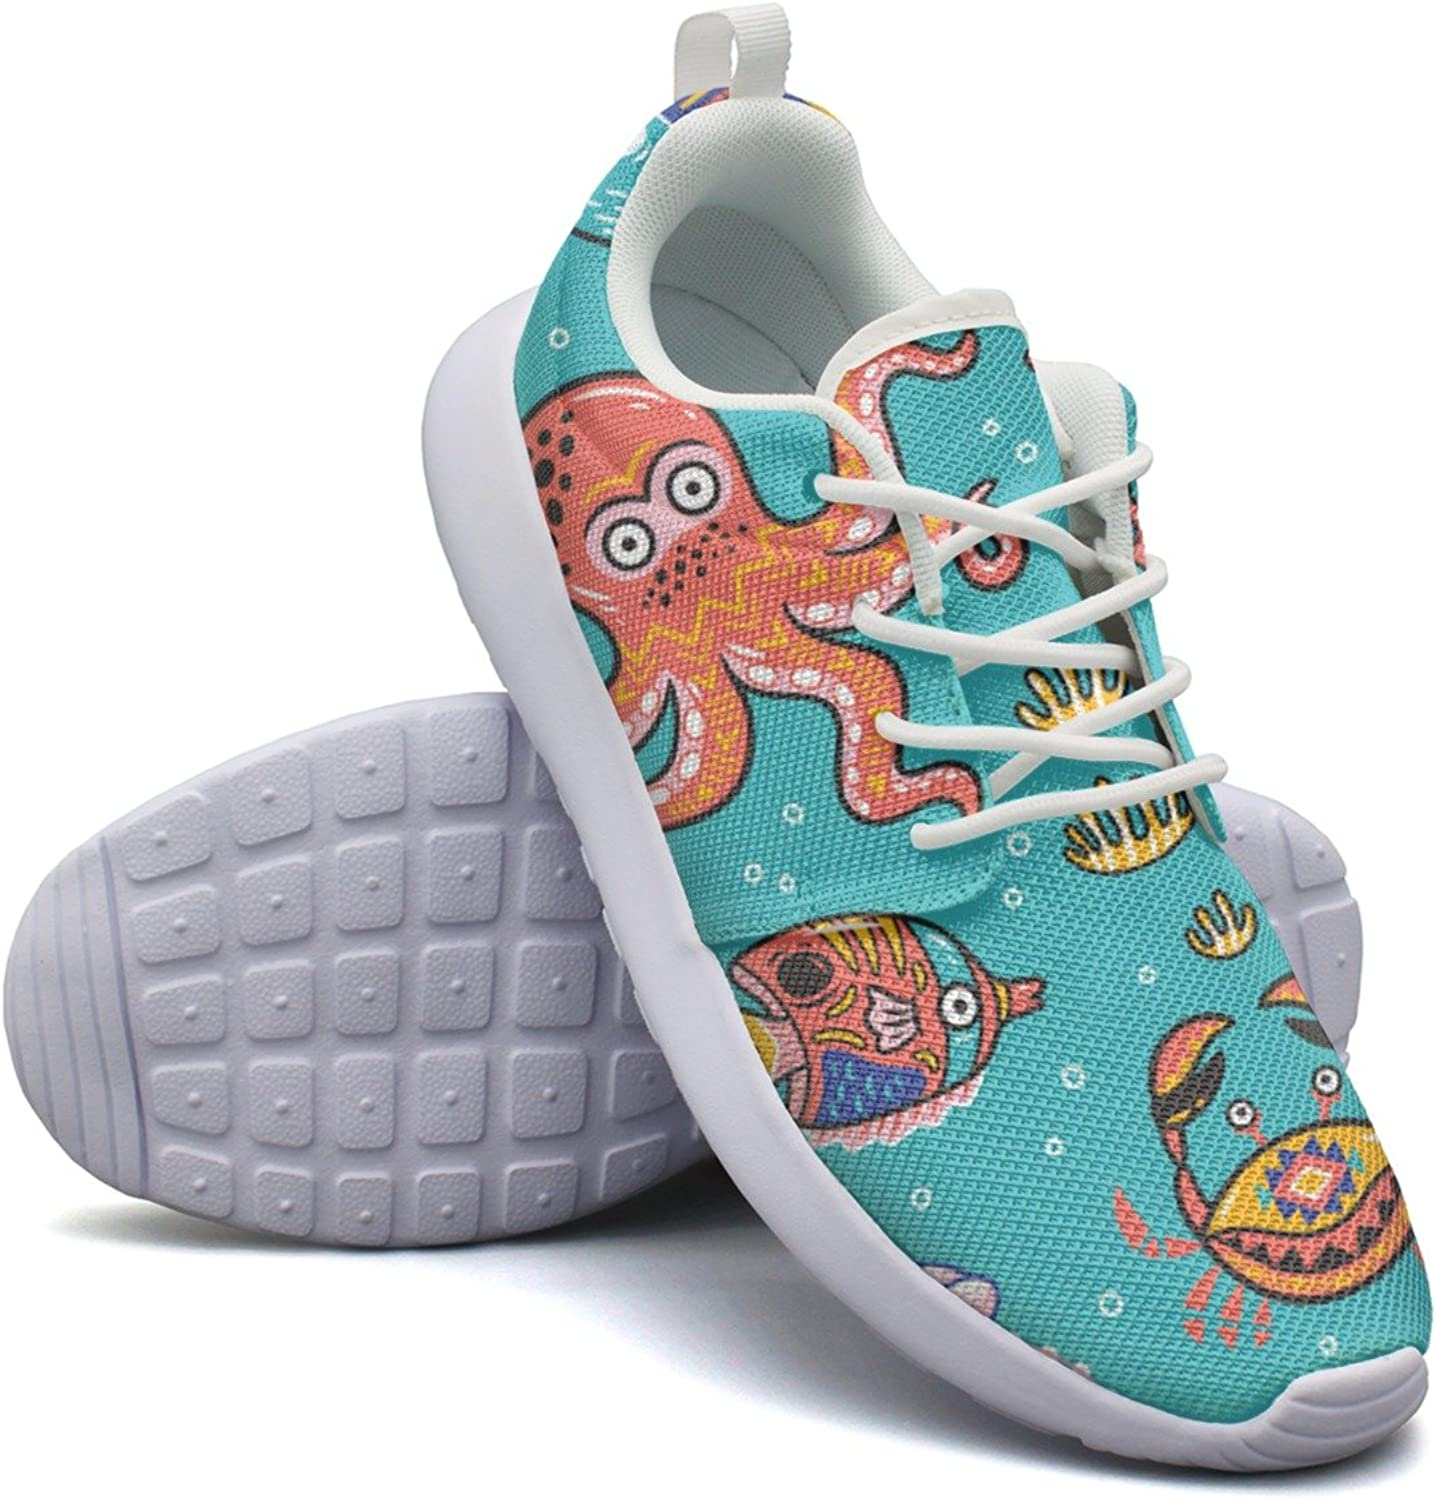 Octopus Jellyfish Crab Women Cool Fashion Running shoes Funny Active